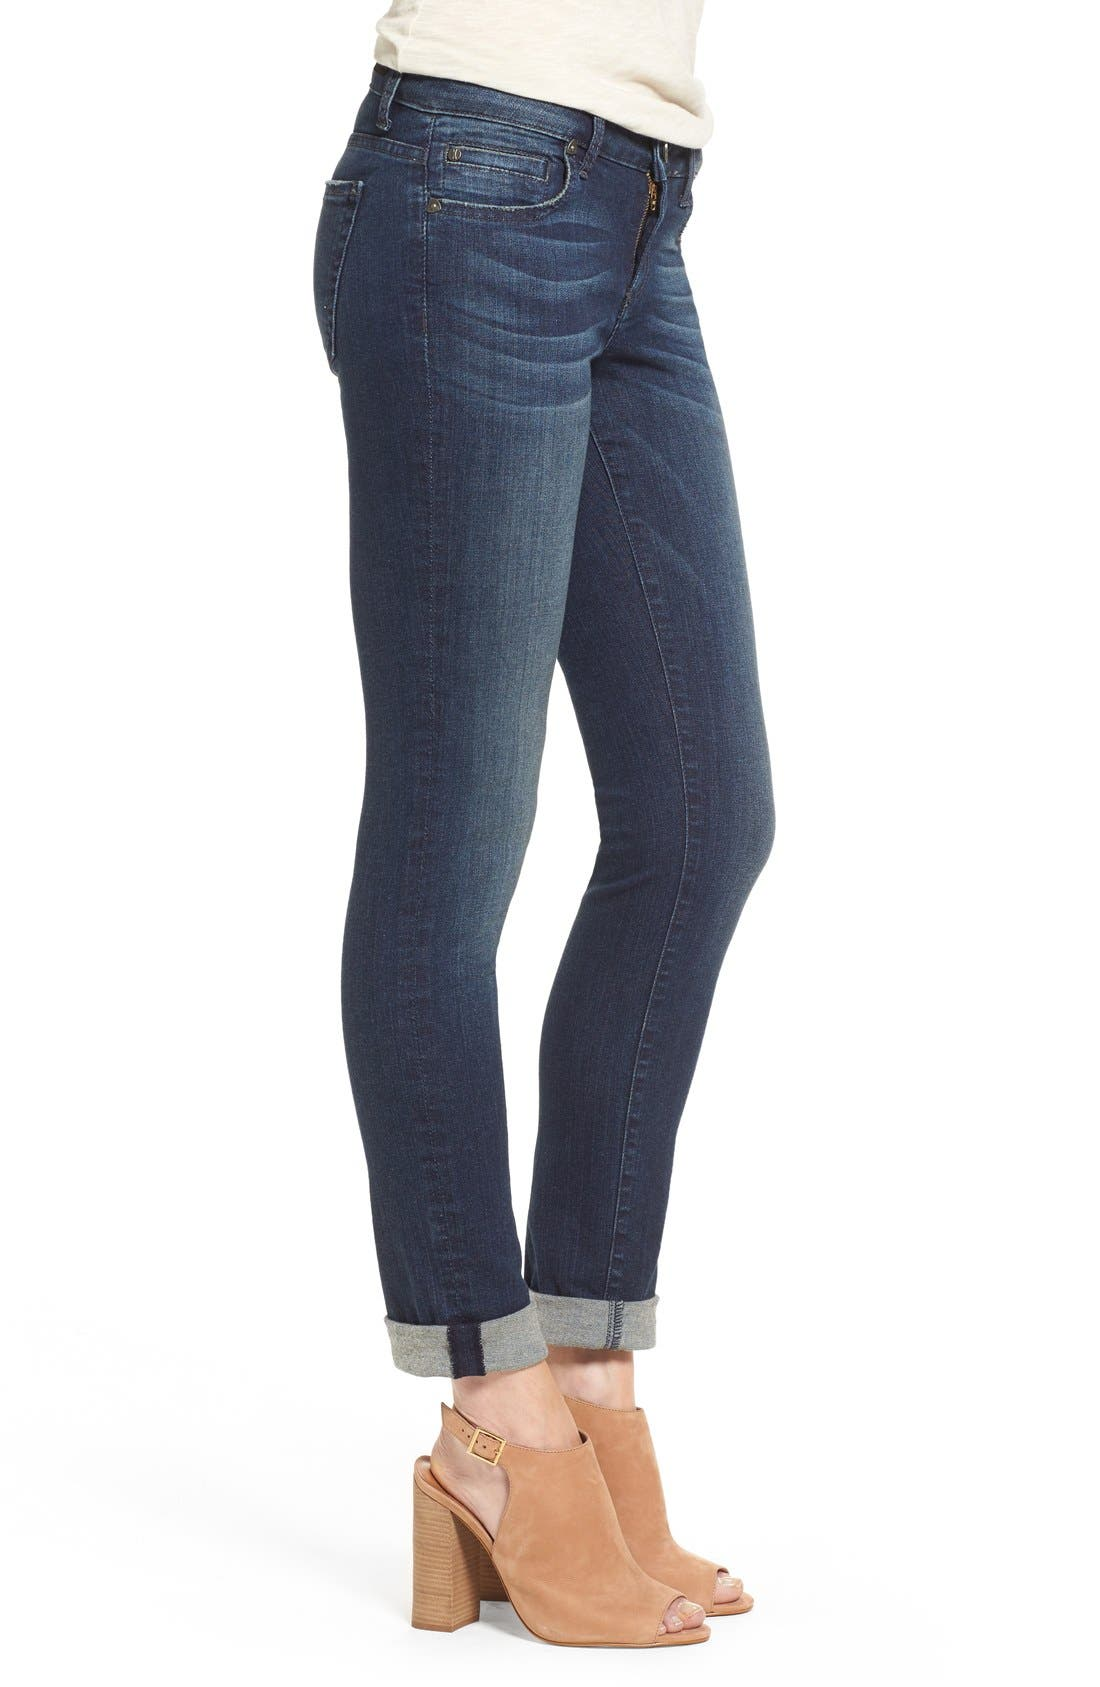 Alternate Image 3  - KUT from the Kloth 'Catherine' Slim Boyfriend Jeans (Carefulness) (Regular & Petite)